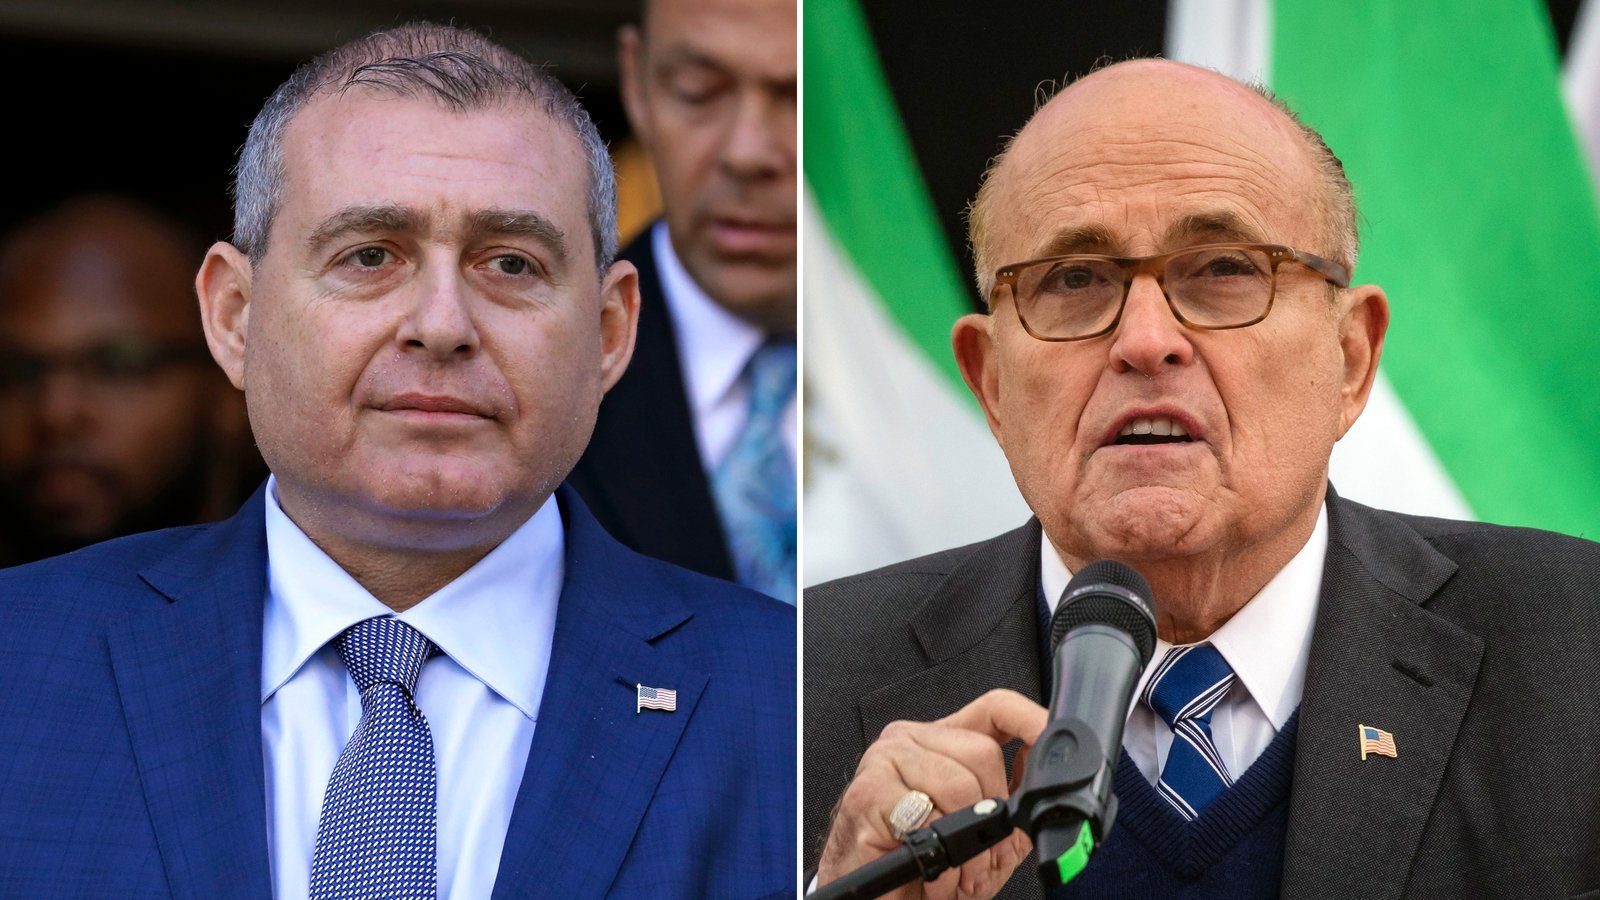 Prosecutors in Giuliani investigation interested in talking to Ukrainian energy company